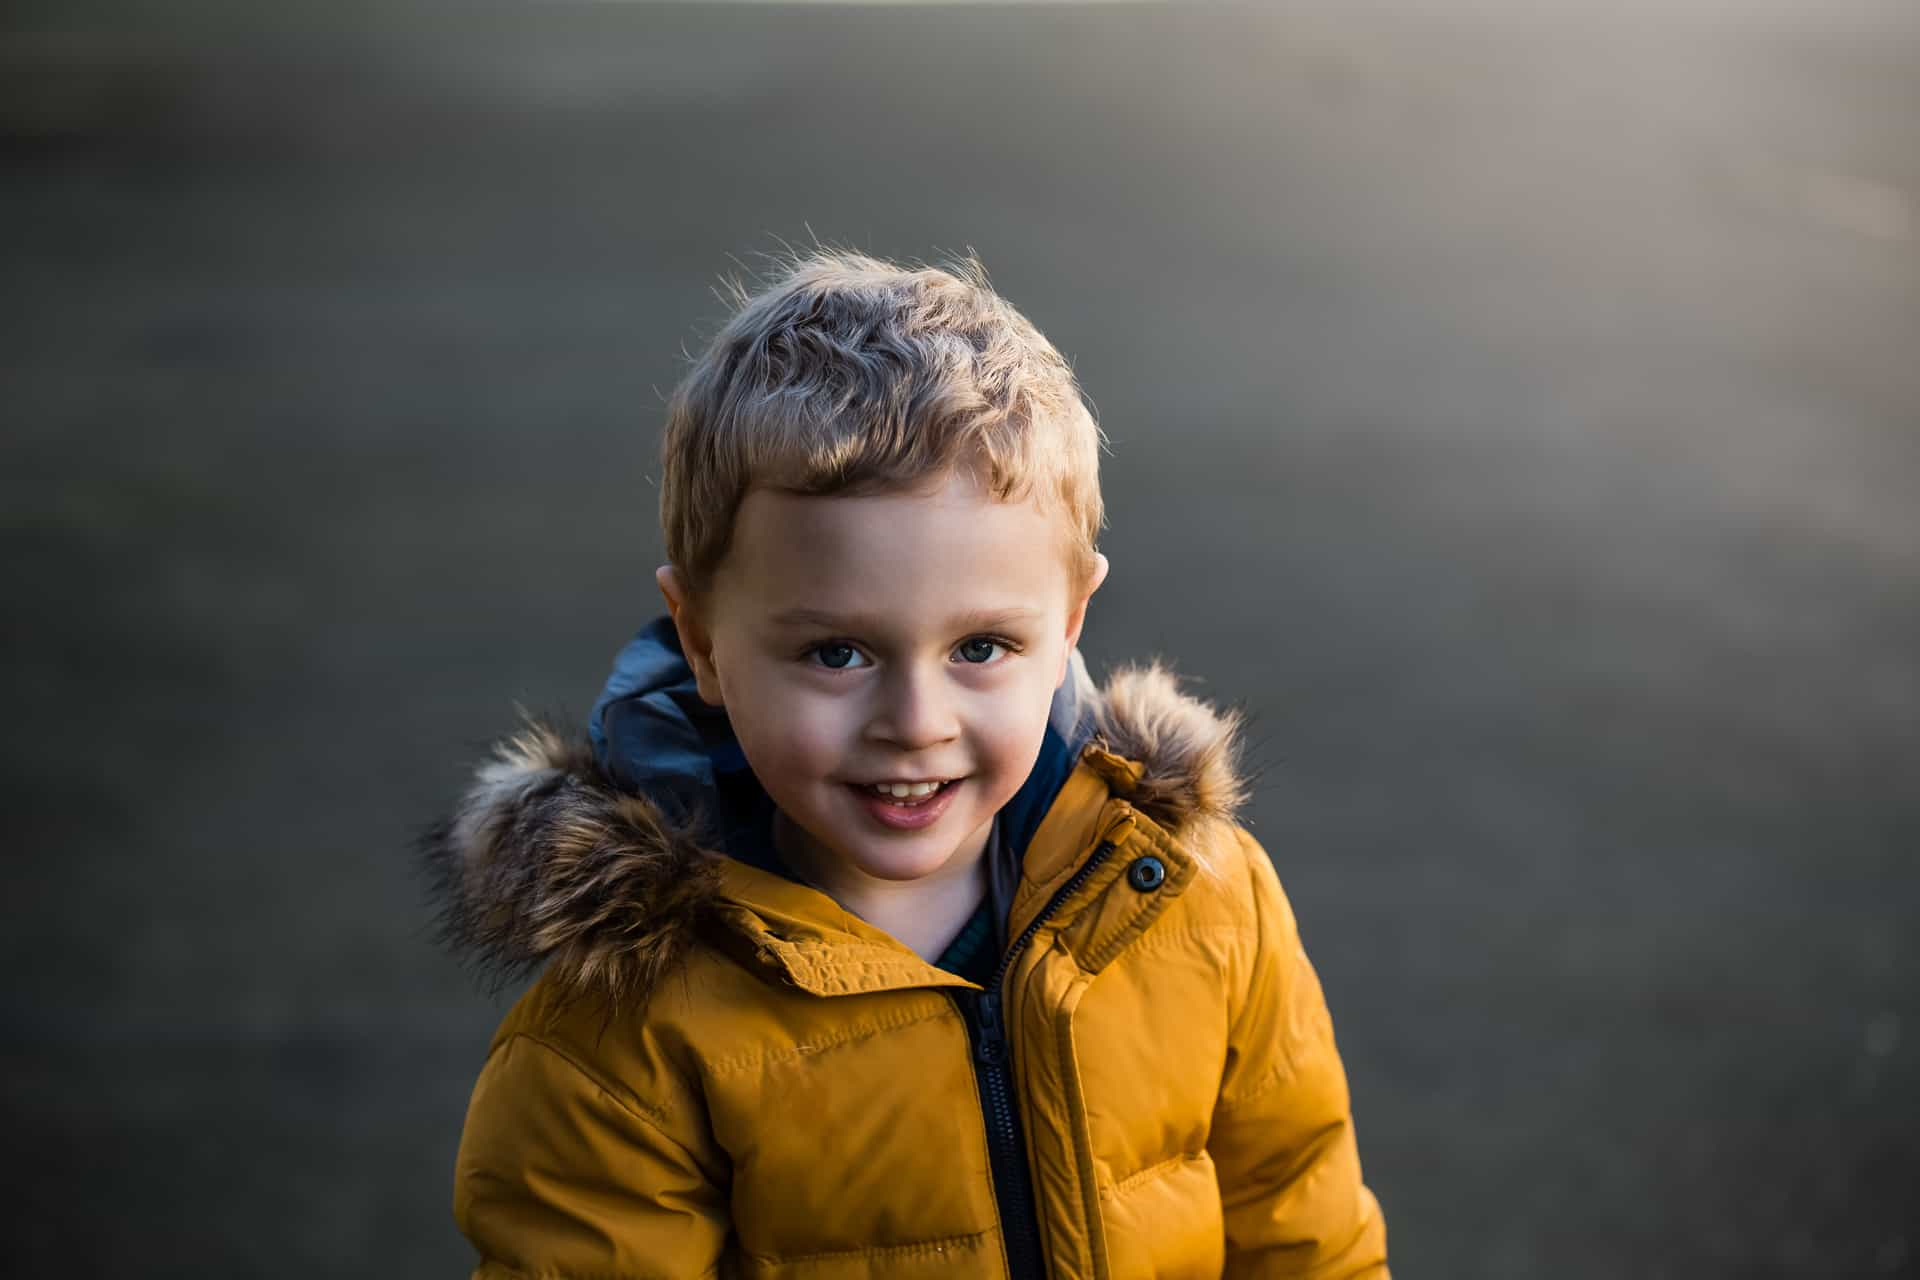 toddler boy in mustard yellow winter coat smiling